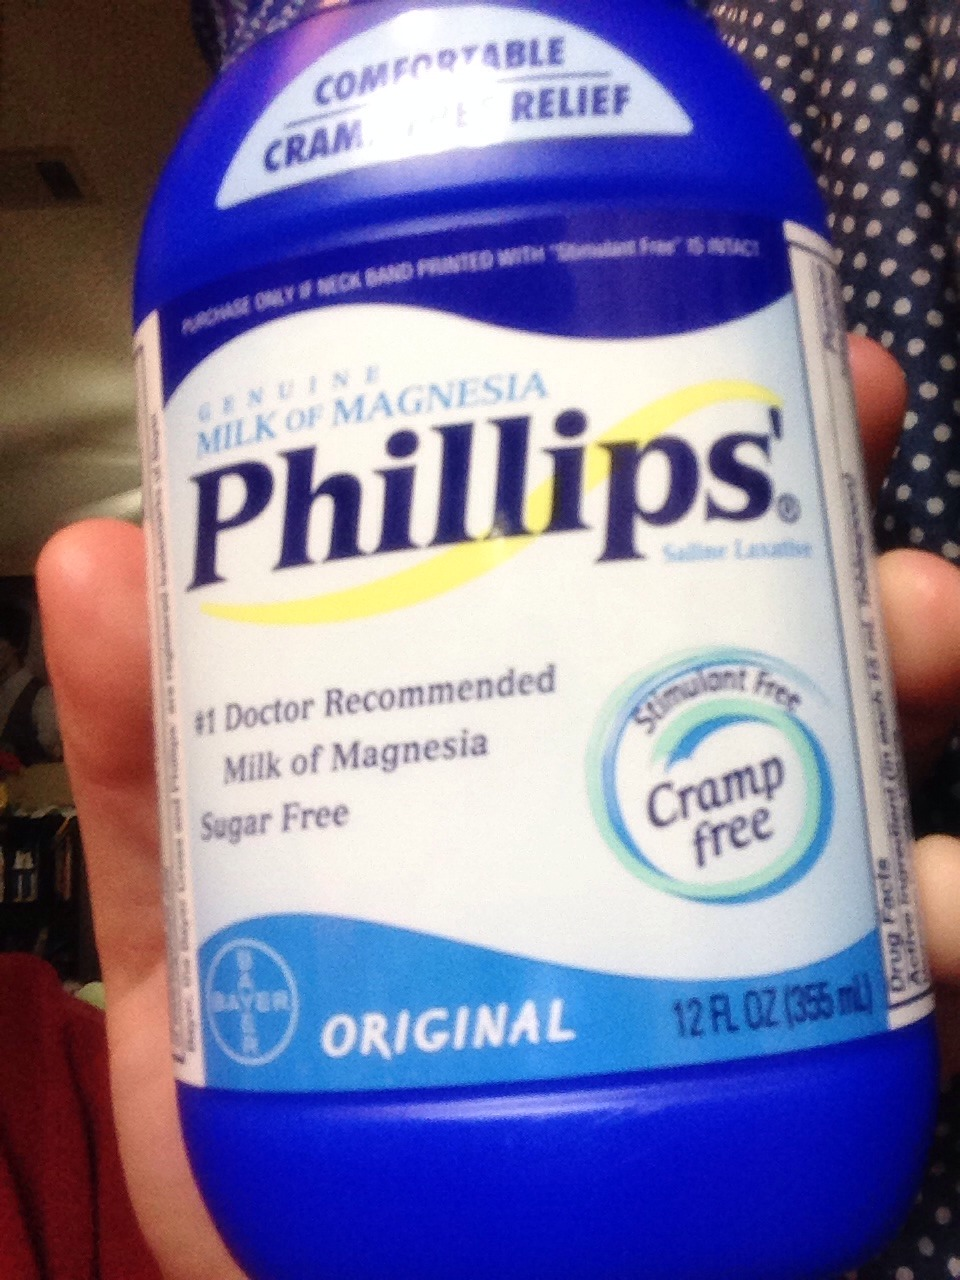 If may sound weird to use Phillips Milk of magnesia on your face, but one of the women that I work with that use to work in the makeup world told me to use this as my primer. It hides the shine from coming through your makeup. GET THE ORIGINAL NOT THE CHERRY!!! But try it! It works!!